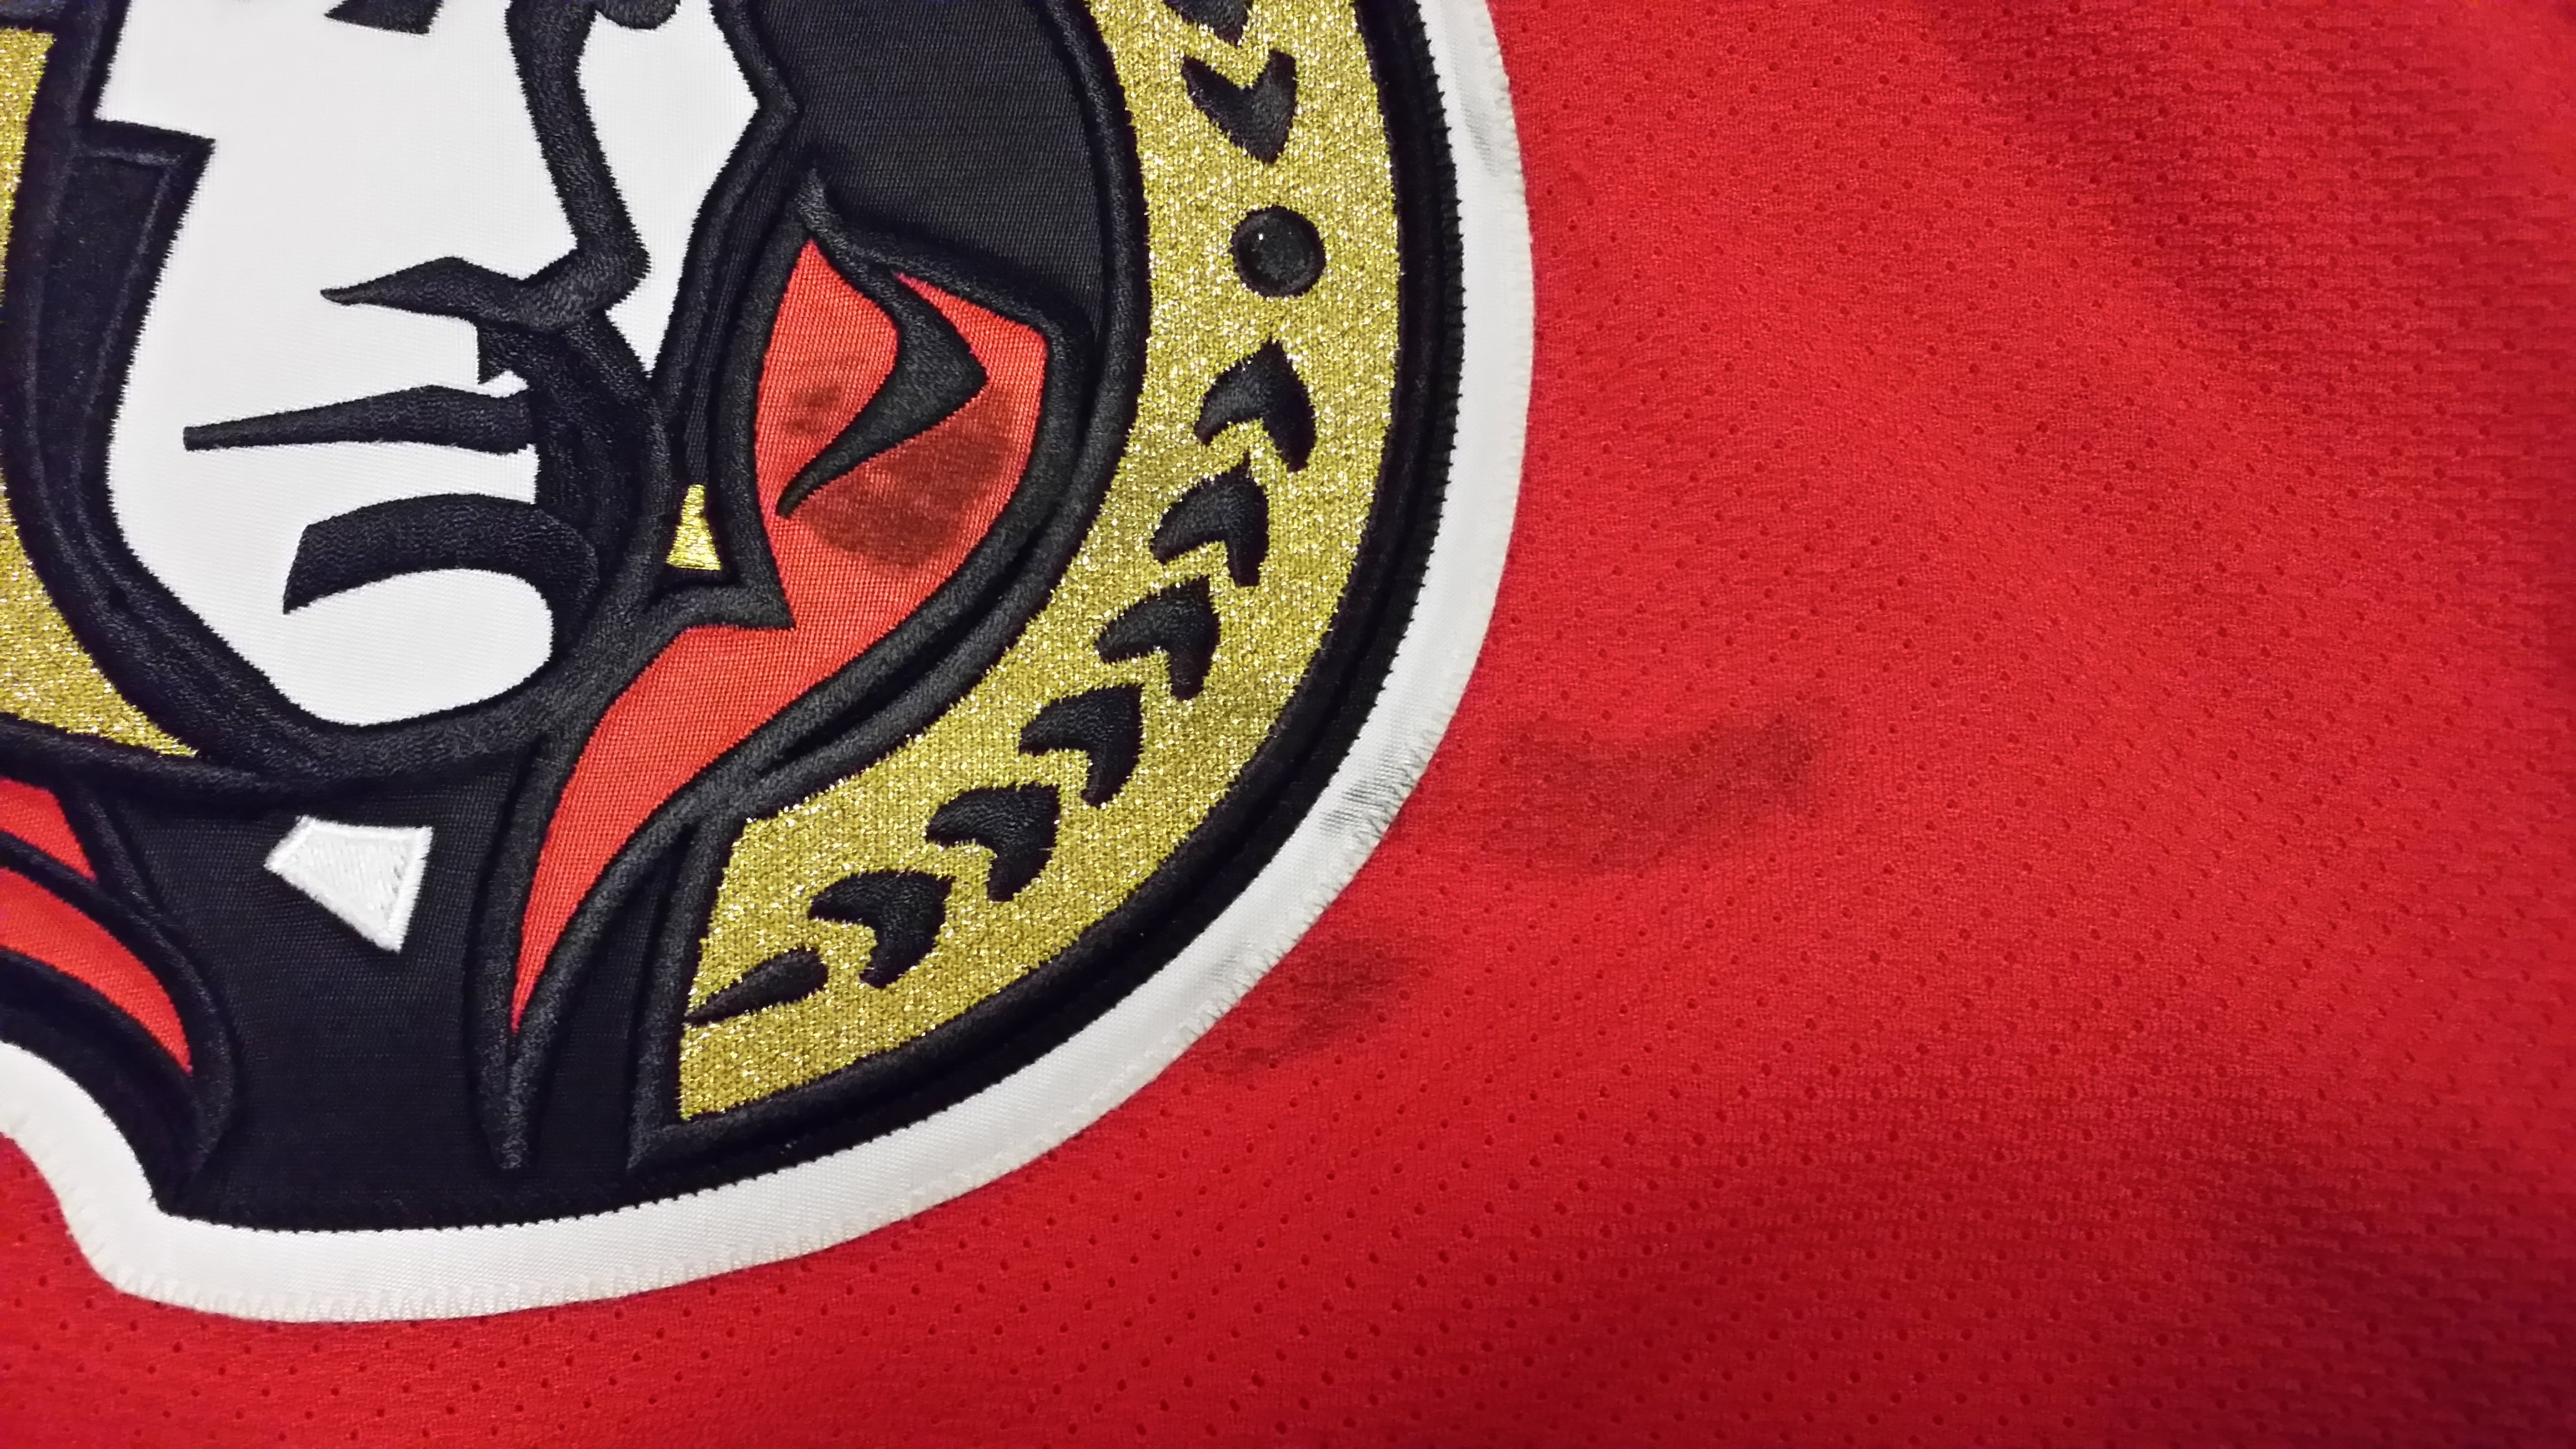 Ottawa Senators Nhl Hockey 23 Wallpaper 4128x2322